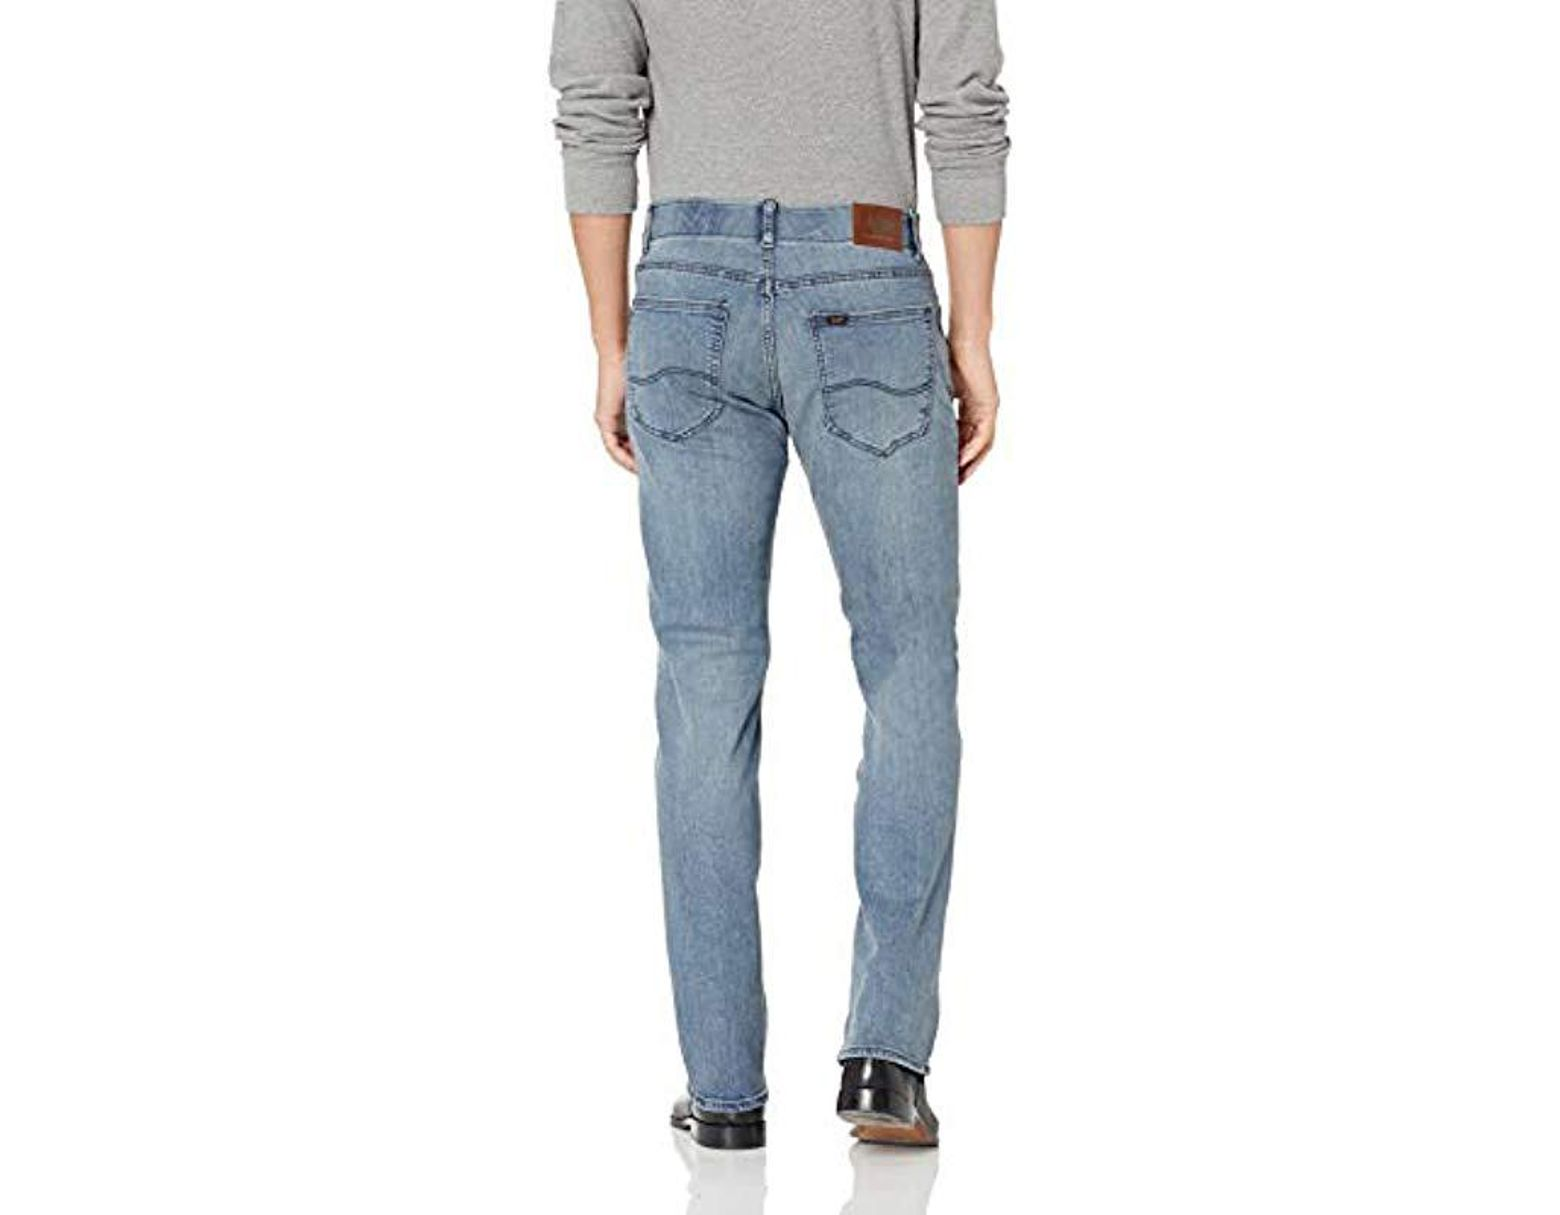 d7717fb4dd5 Lee Jeans Modern Series Extreme Motion Regular Fit Bootcut Jean in Blue for  Men - Lyst